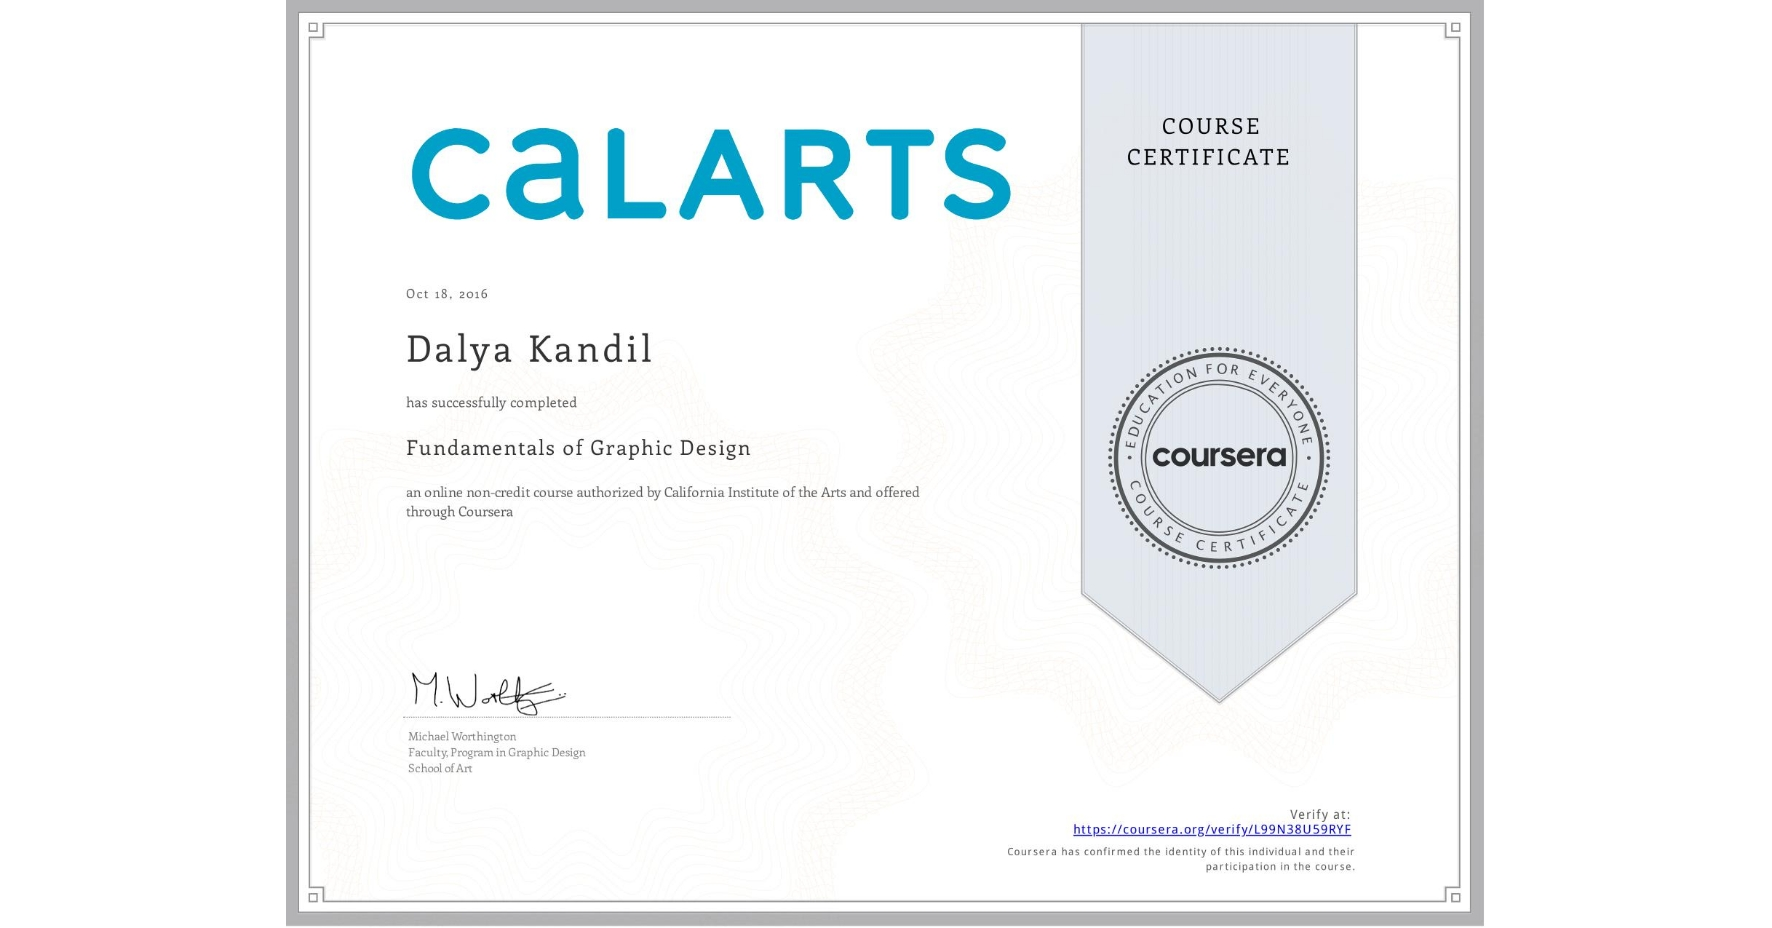 View certificate for Dalya Kandil, Fundamentals of Graphic Design, an online non-credit course authorized by California Institute of the Arts and offered through Coursera